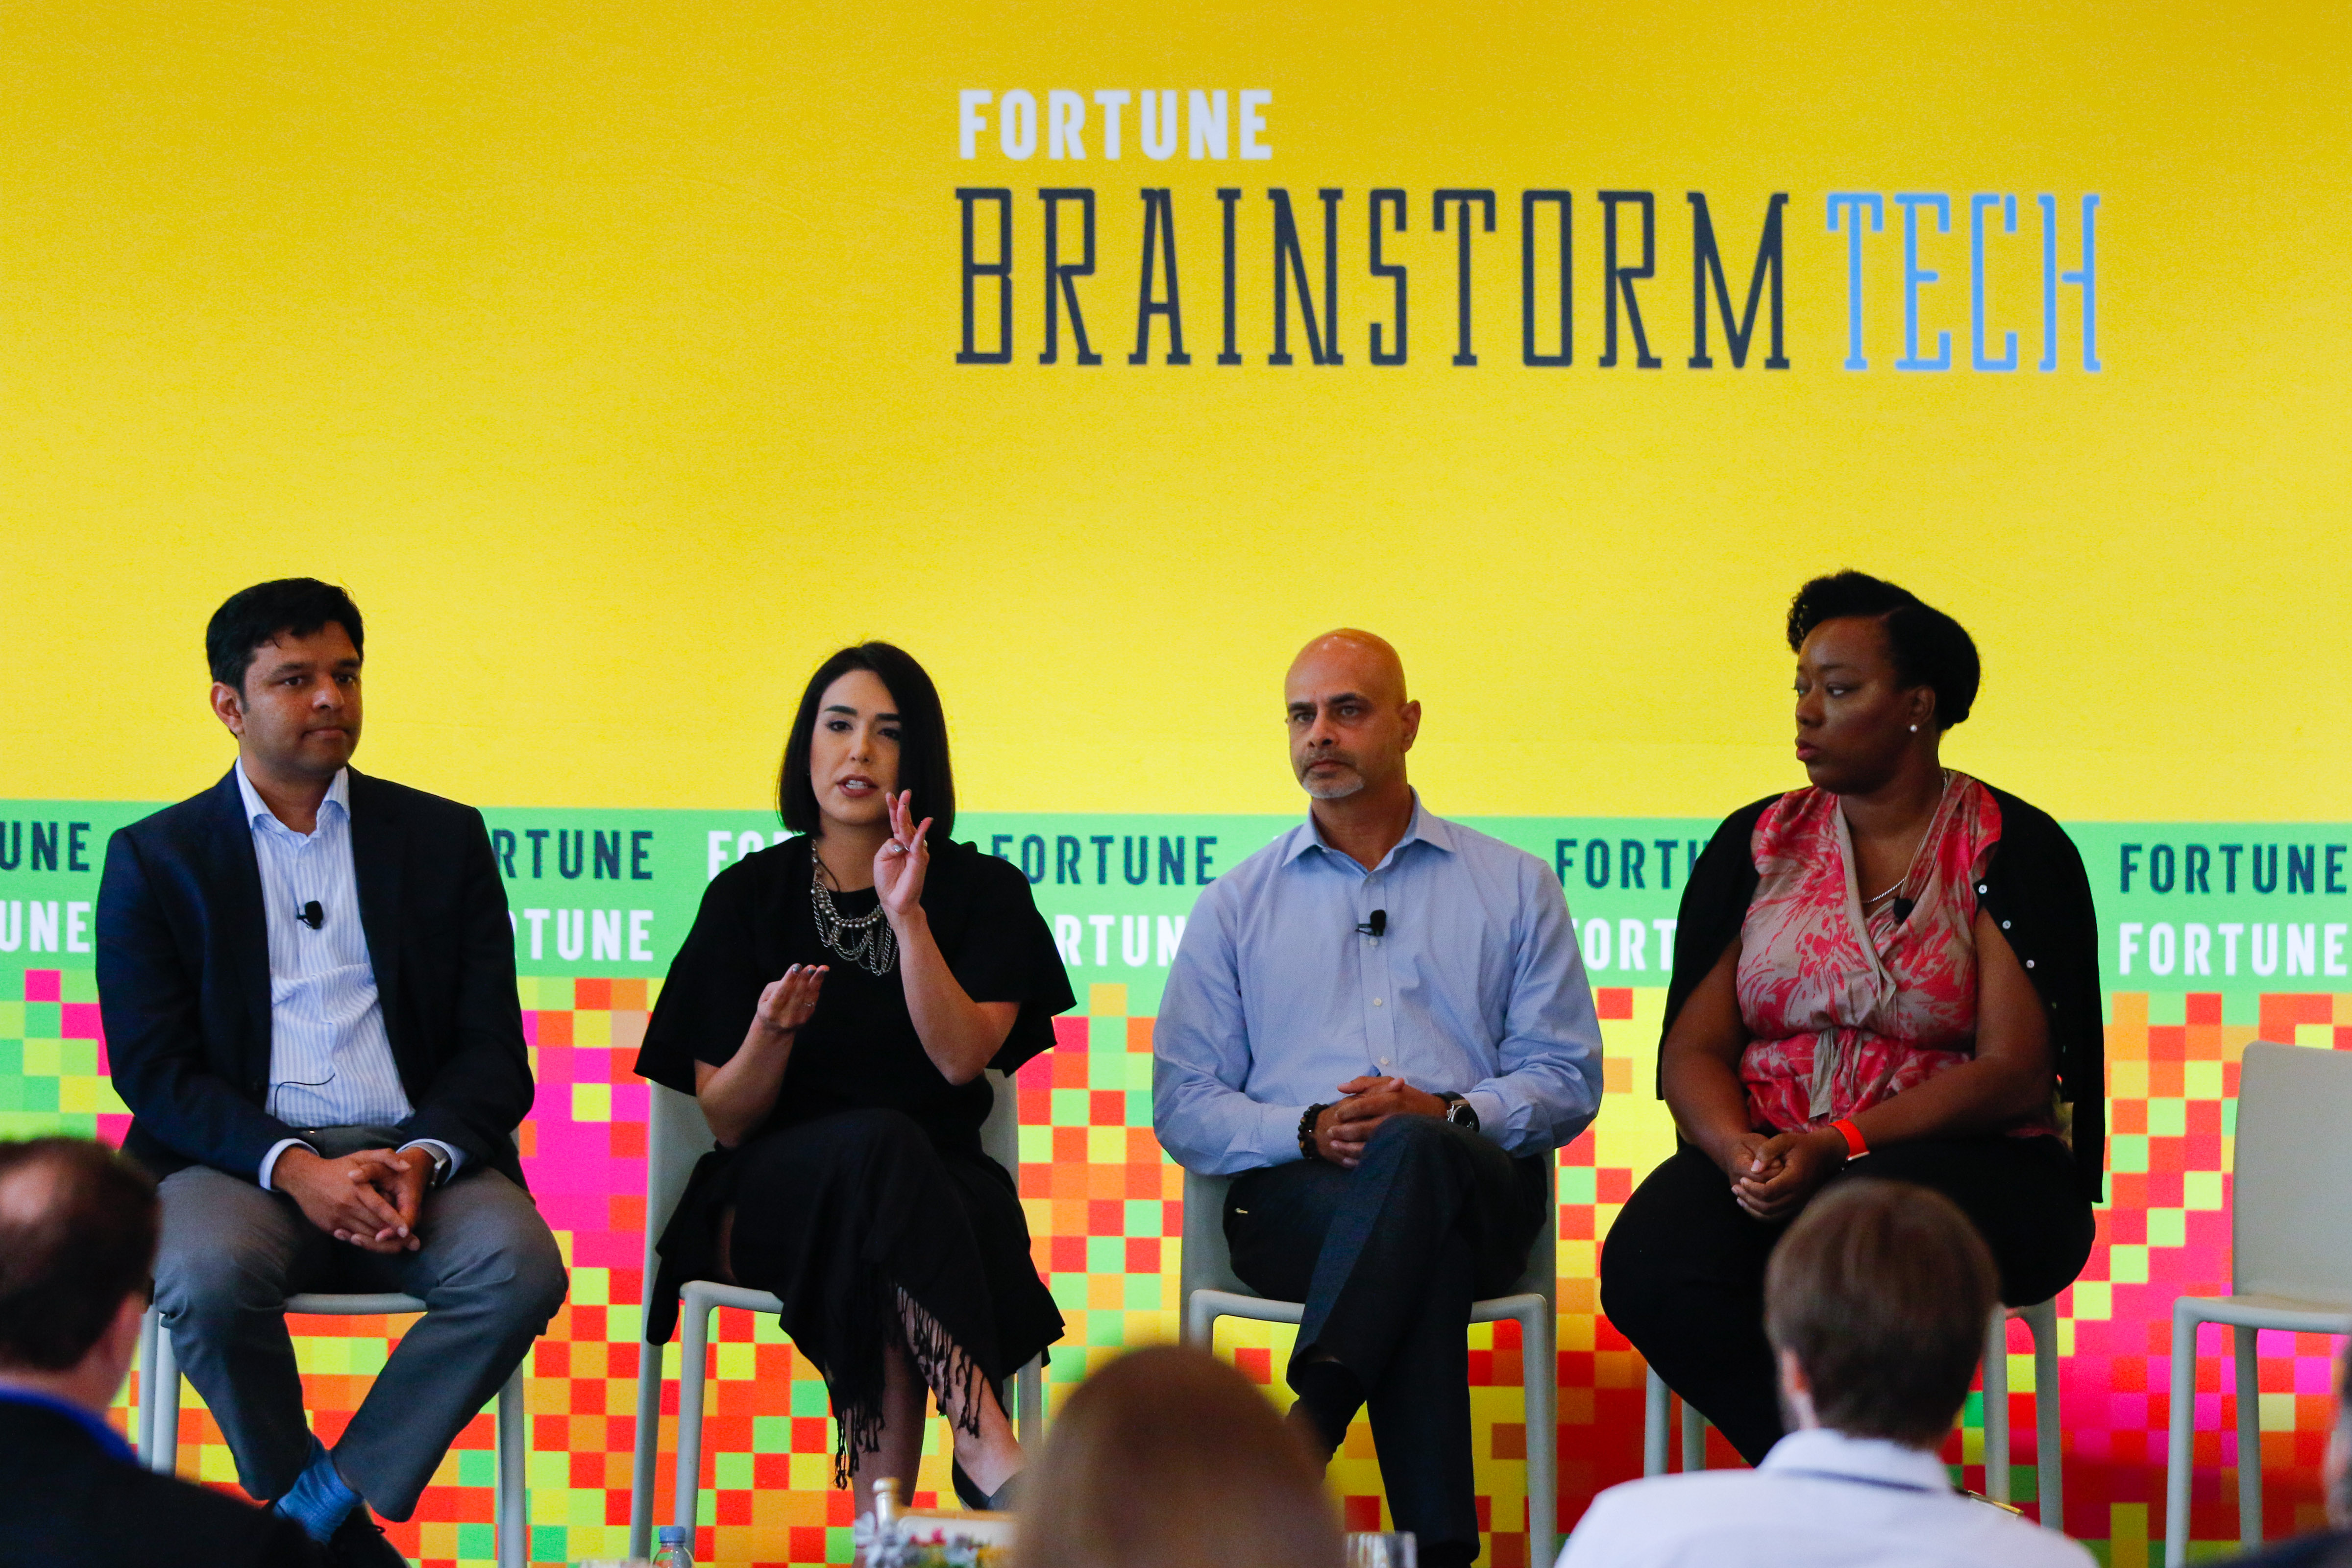 A panel discussed how to find the humanity in artificial intelligence at Fortune Brainstorm Tech.